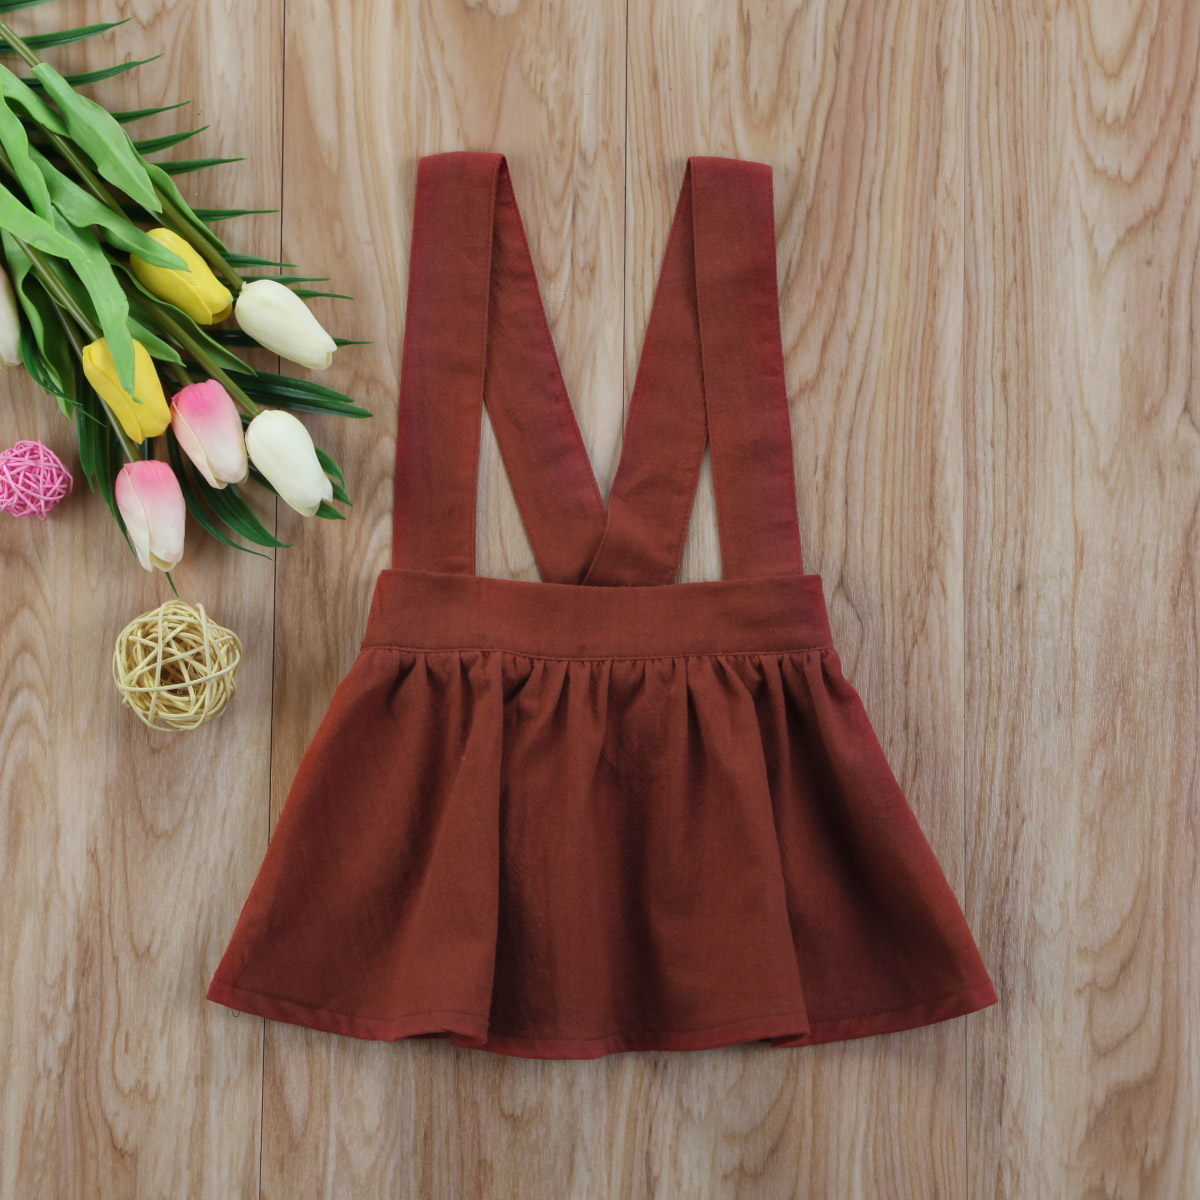 2018 Spring Baby Girls Brown Color Overall Skirt Fashion Baby Pirncess Tutu Skirts Children Clothing 6M-3Y